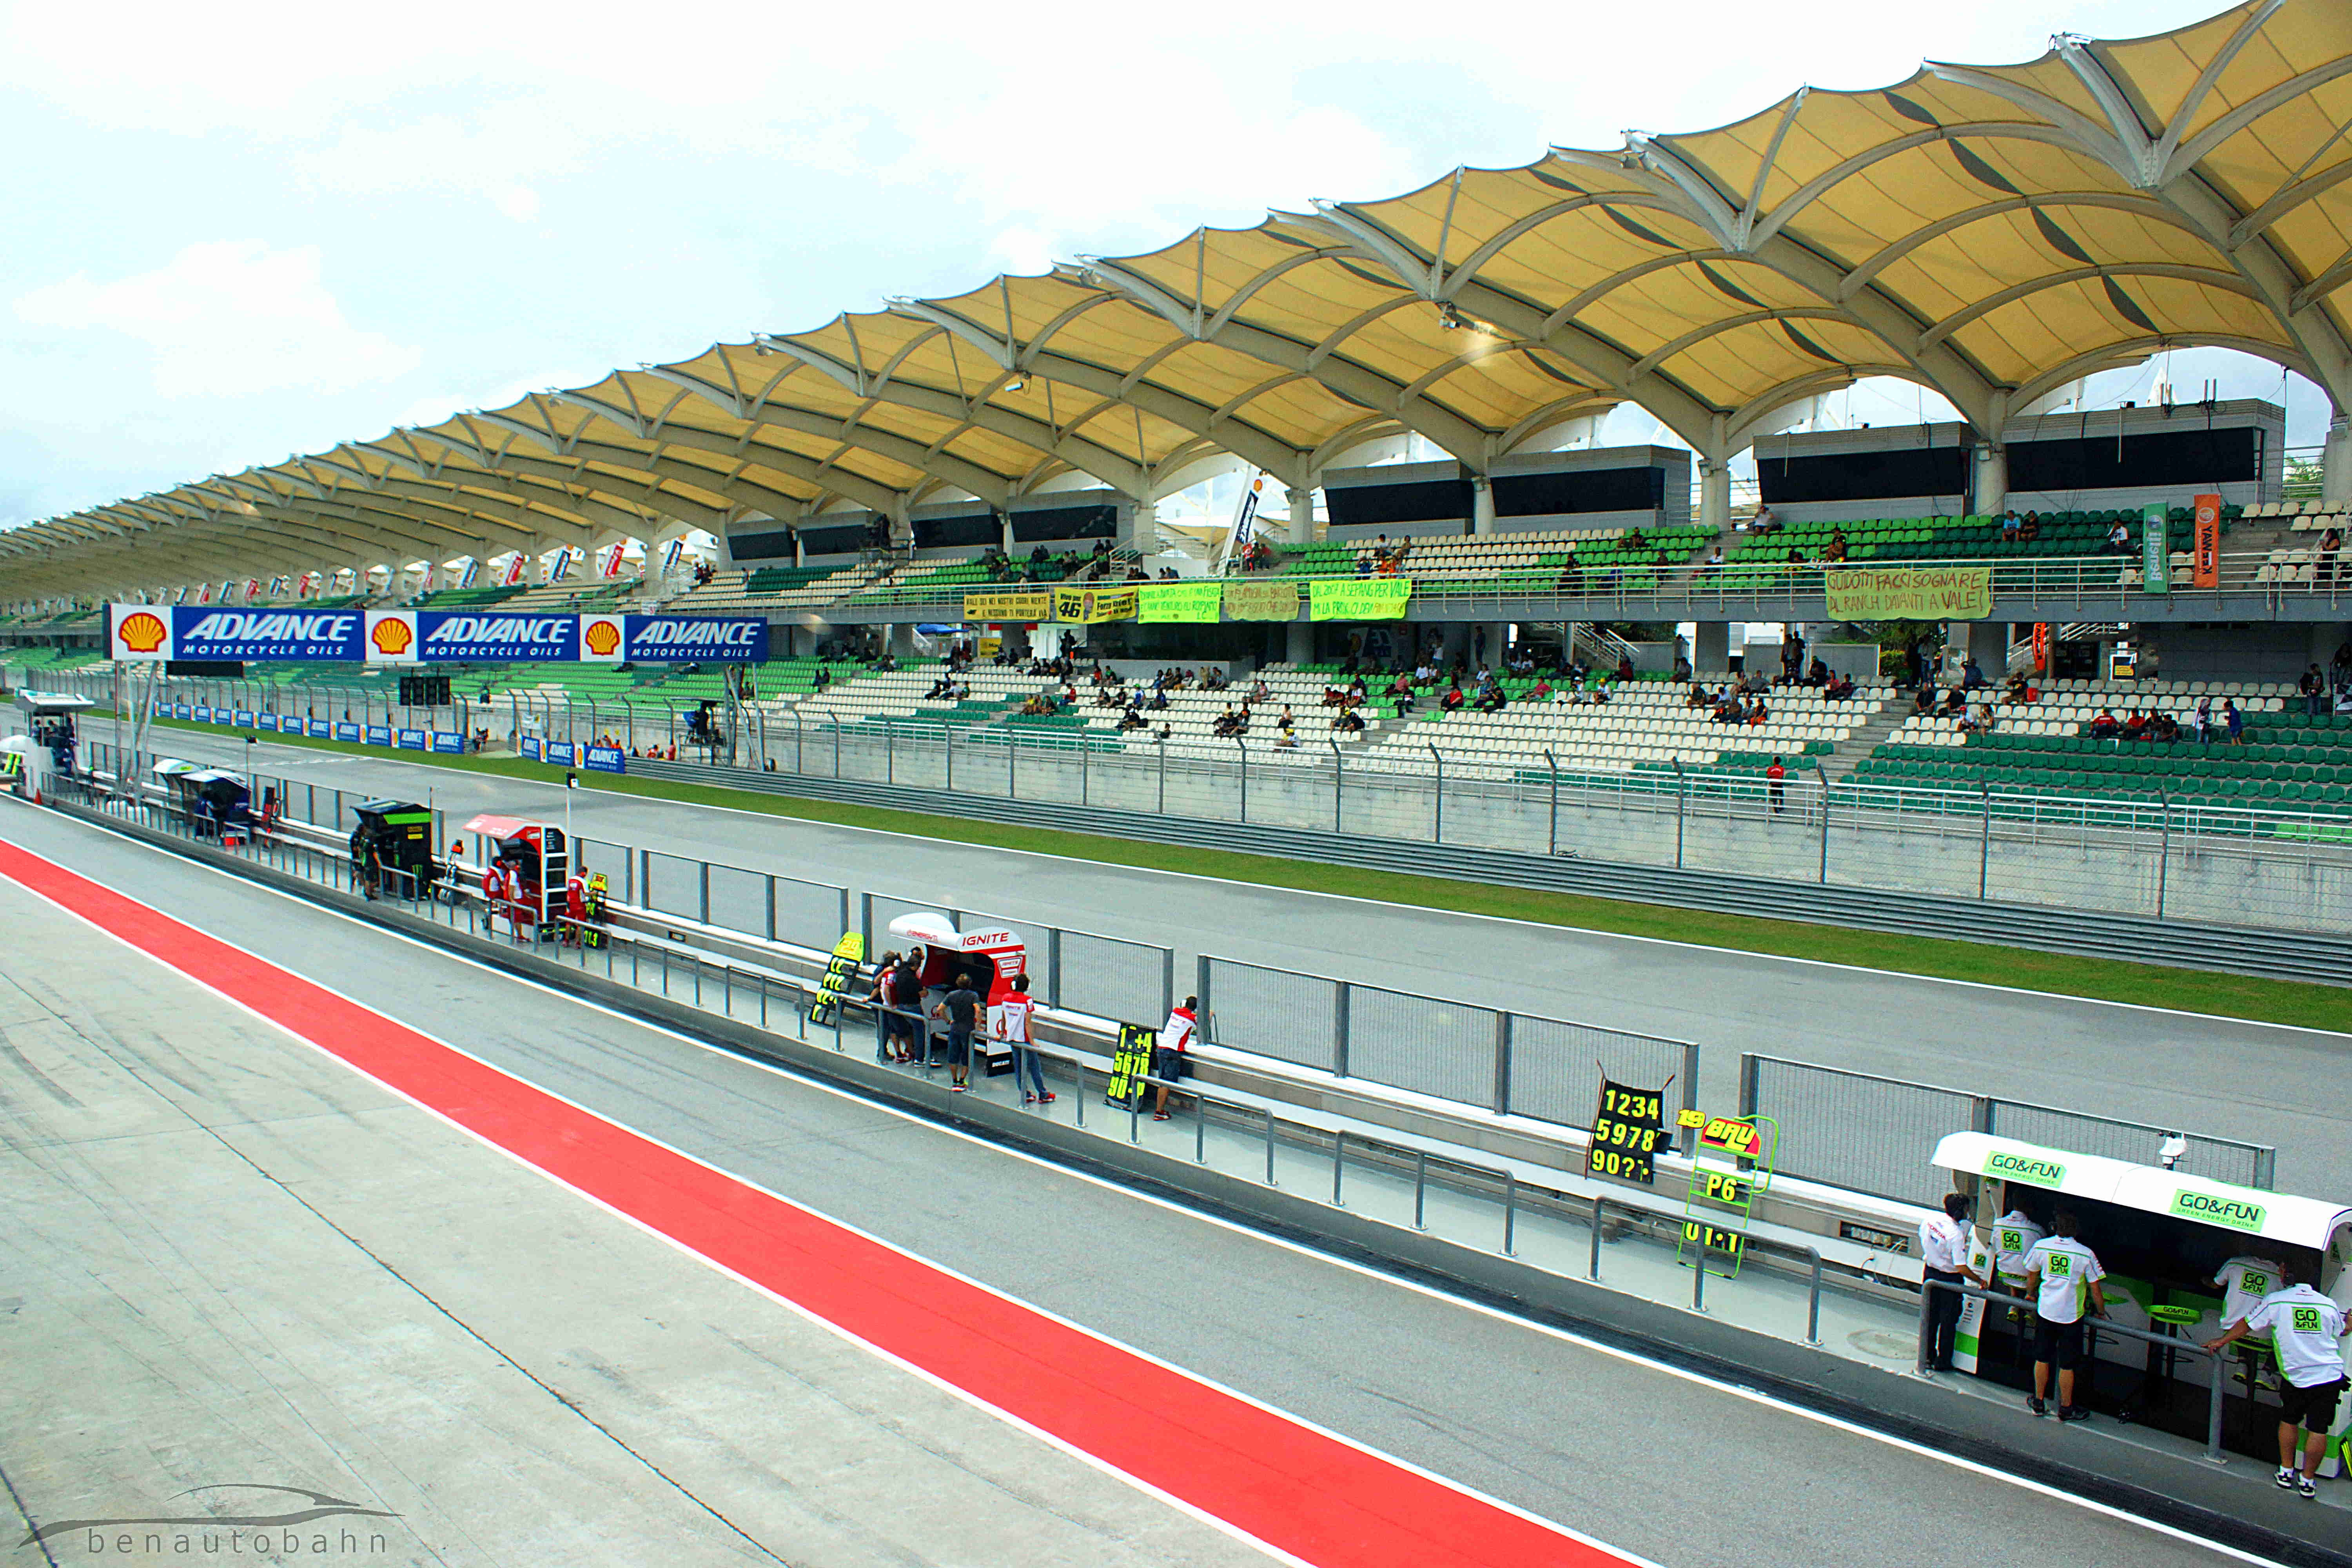 A calm Friday during riders' practice.